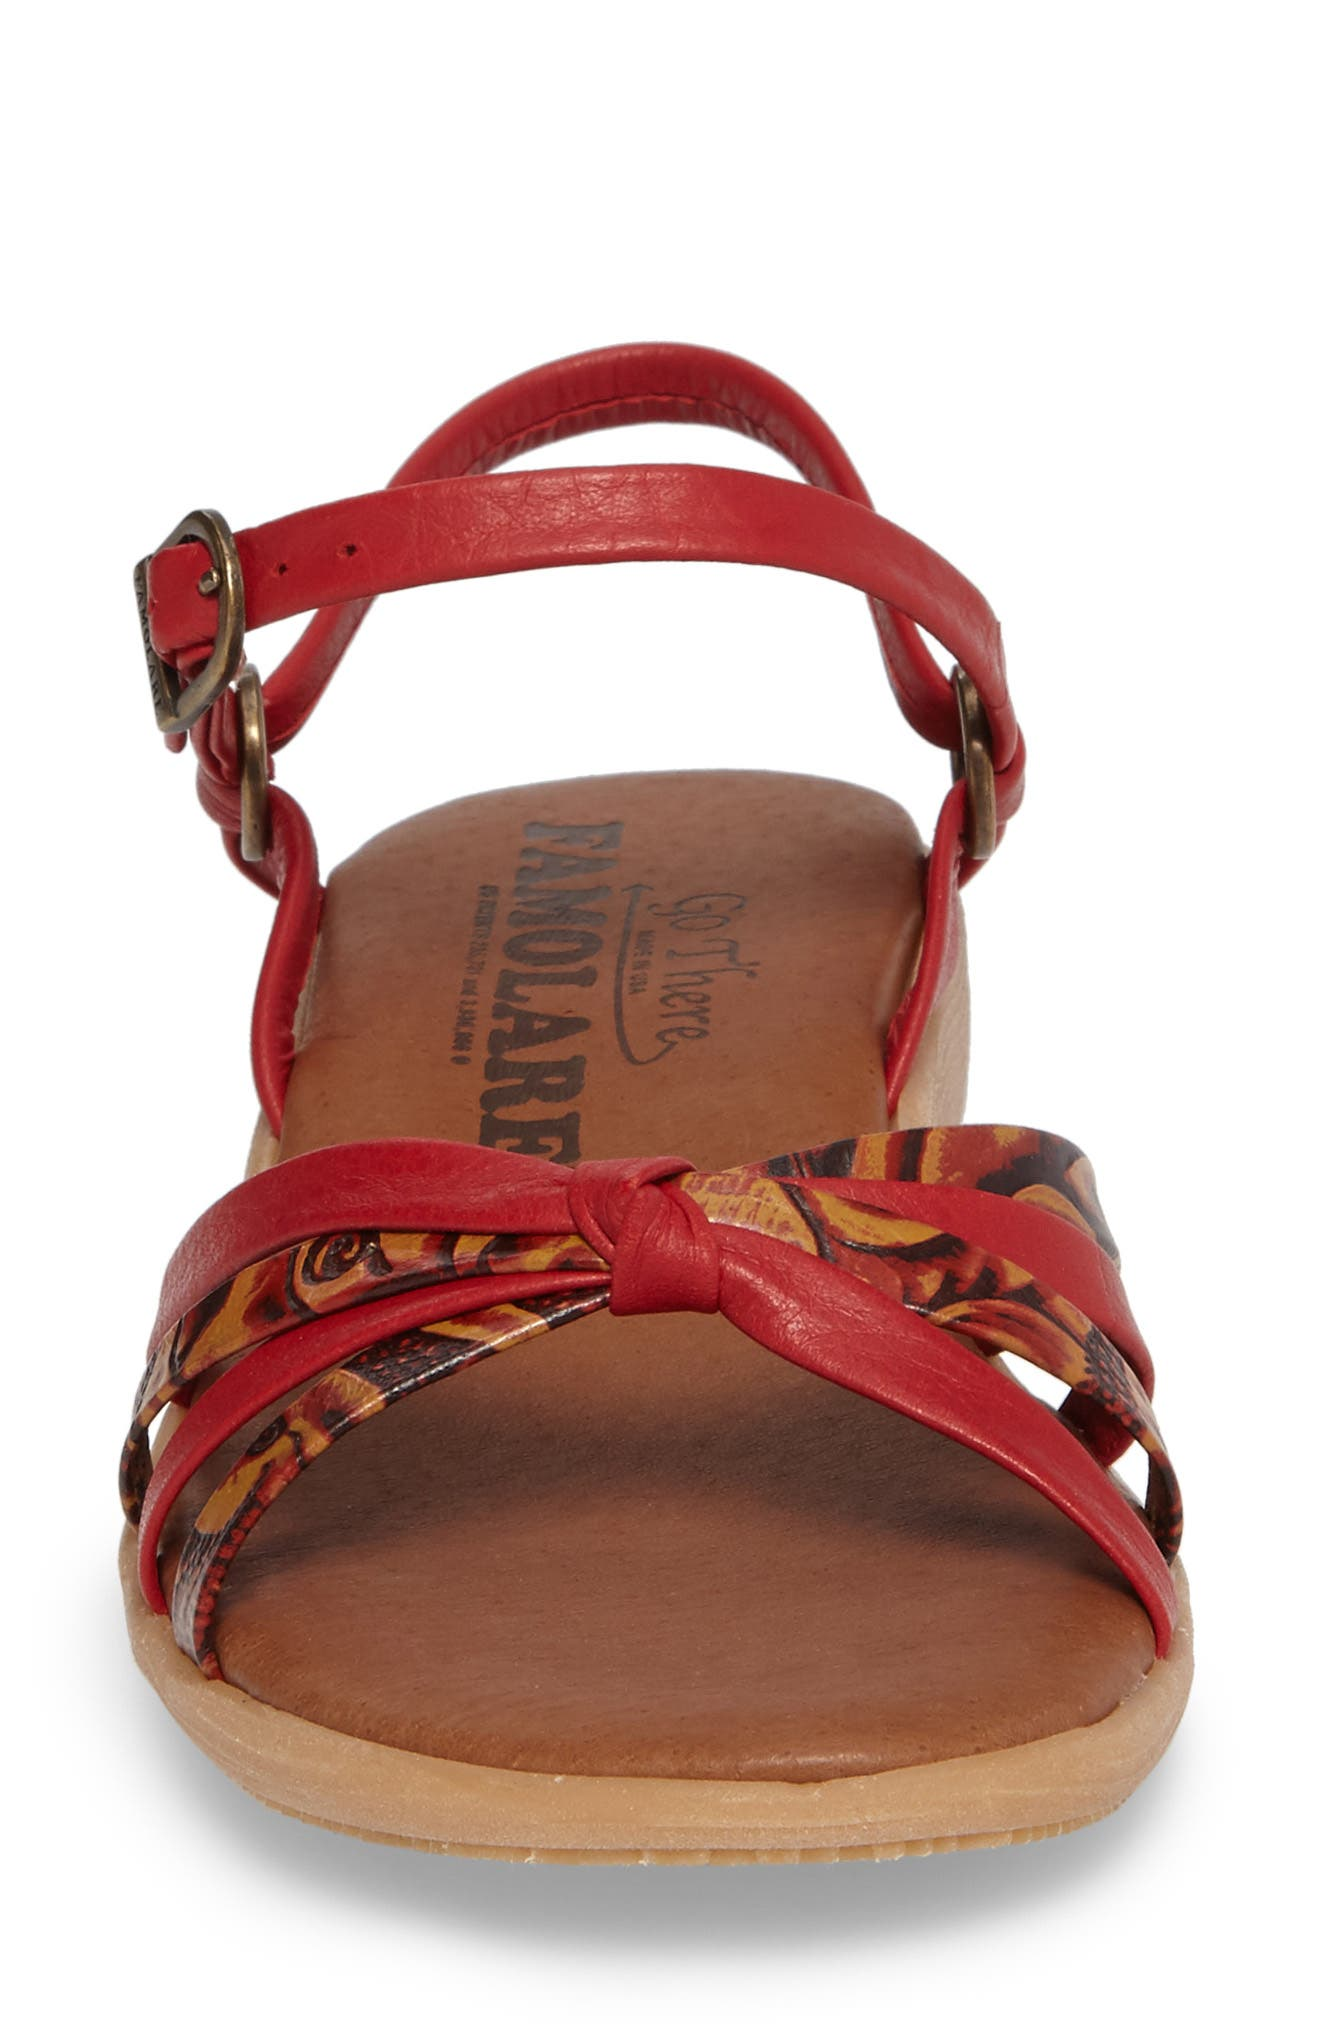 Strap Music Knotted Sandal,                             Alternate thumbnail 4, color,                             MULTI CORAL LEATHER